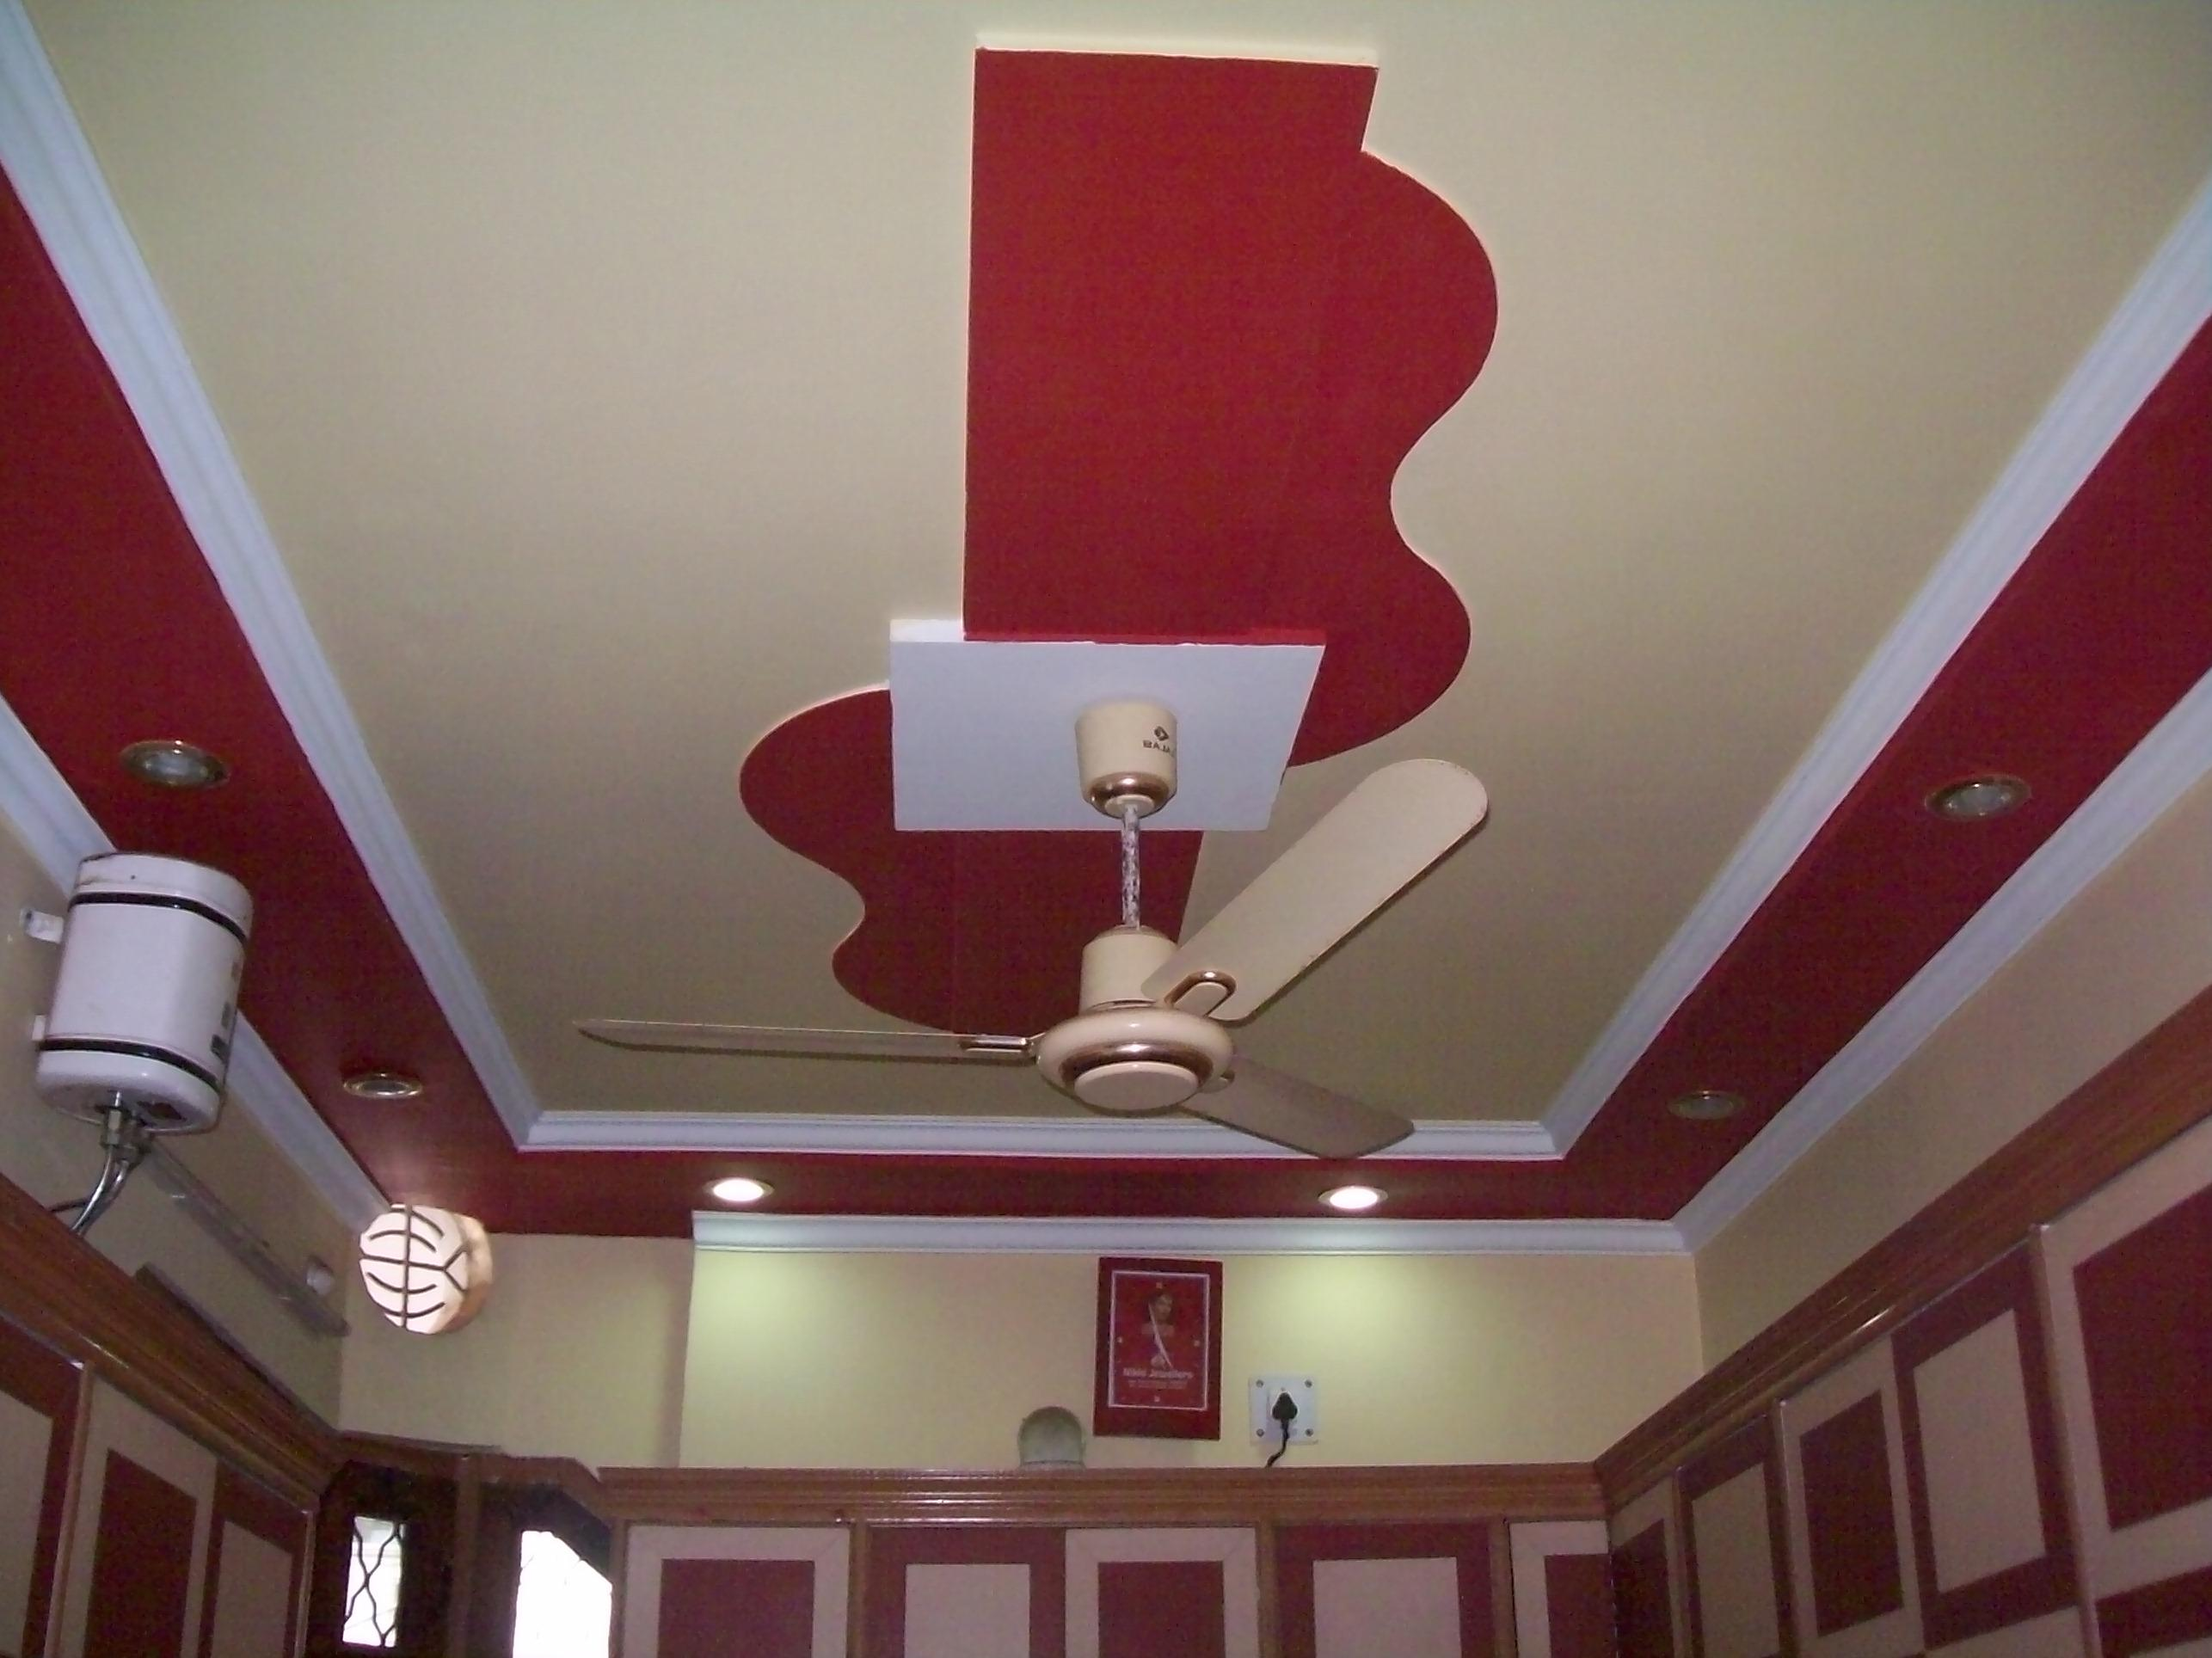 Plaster of paris ceiling designs for living room for Plaster of paris ceiling designs for living room